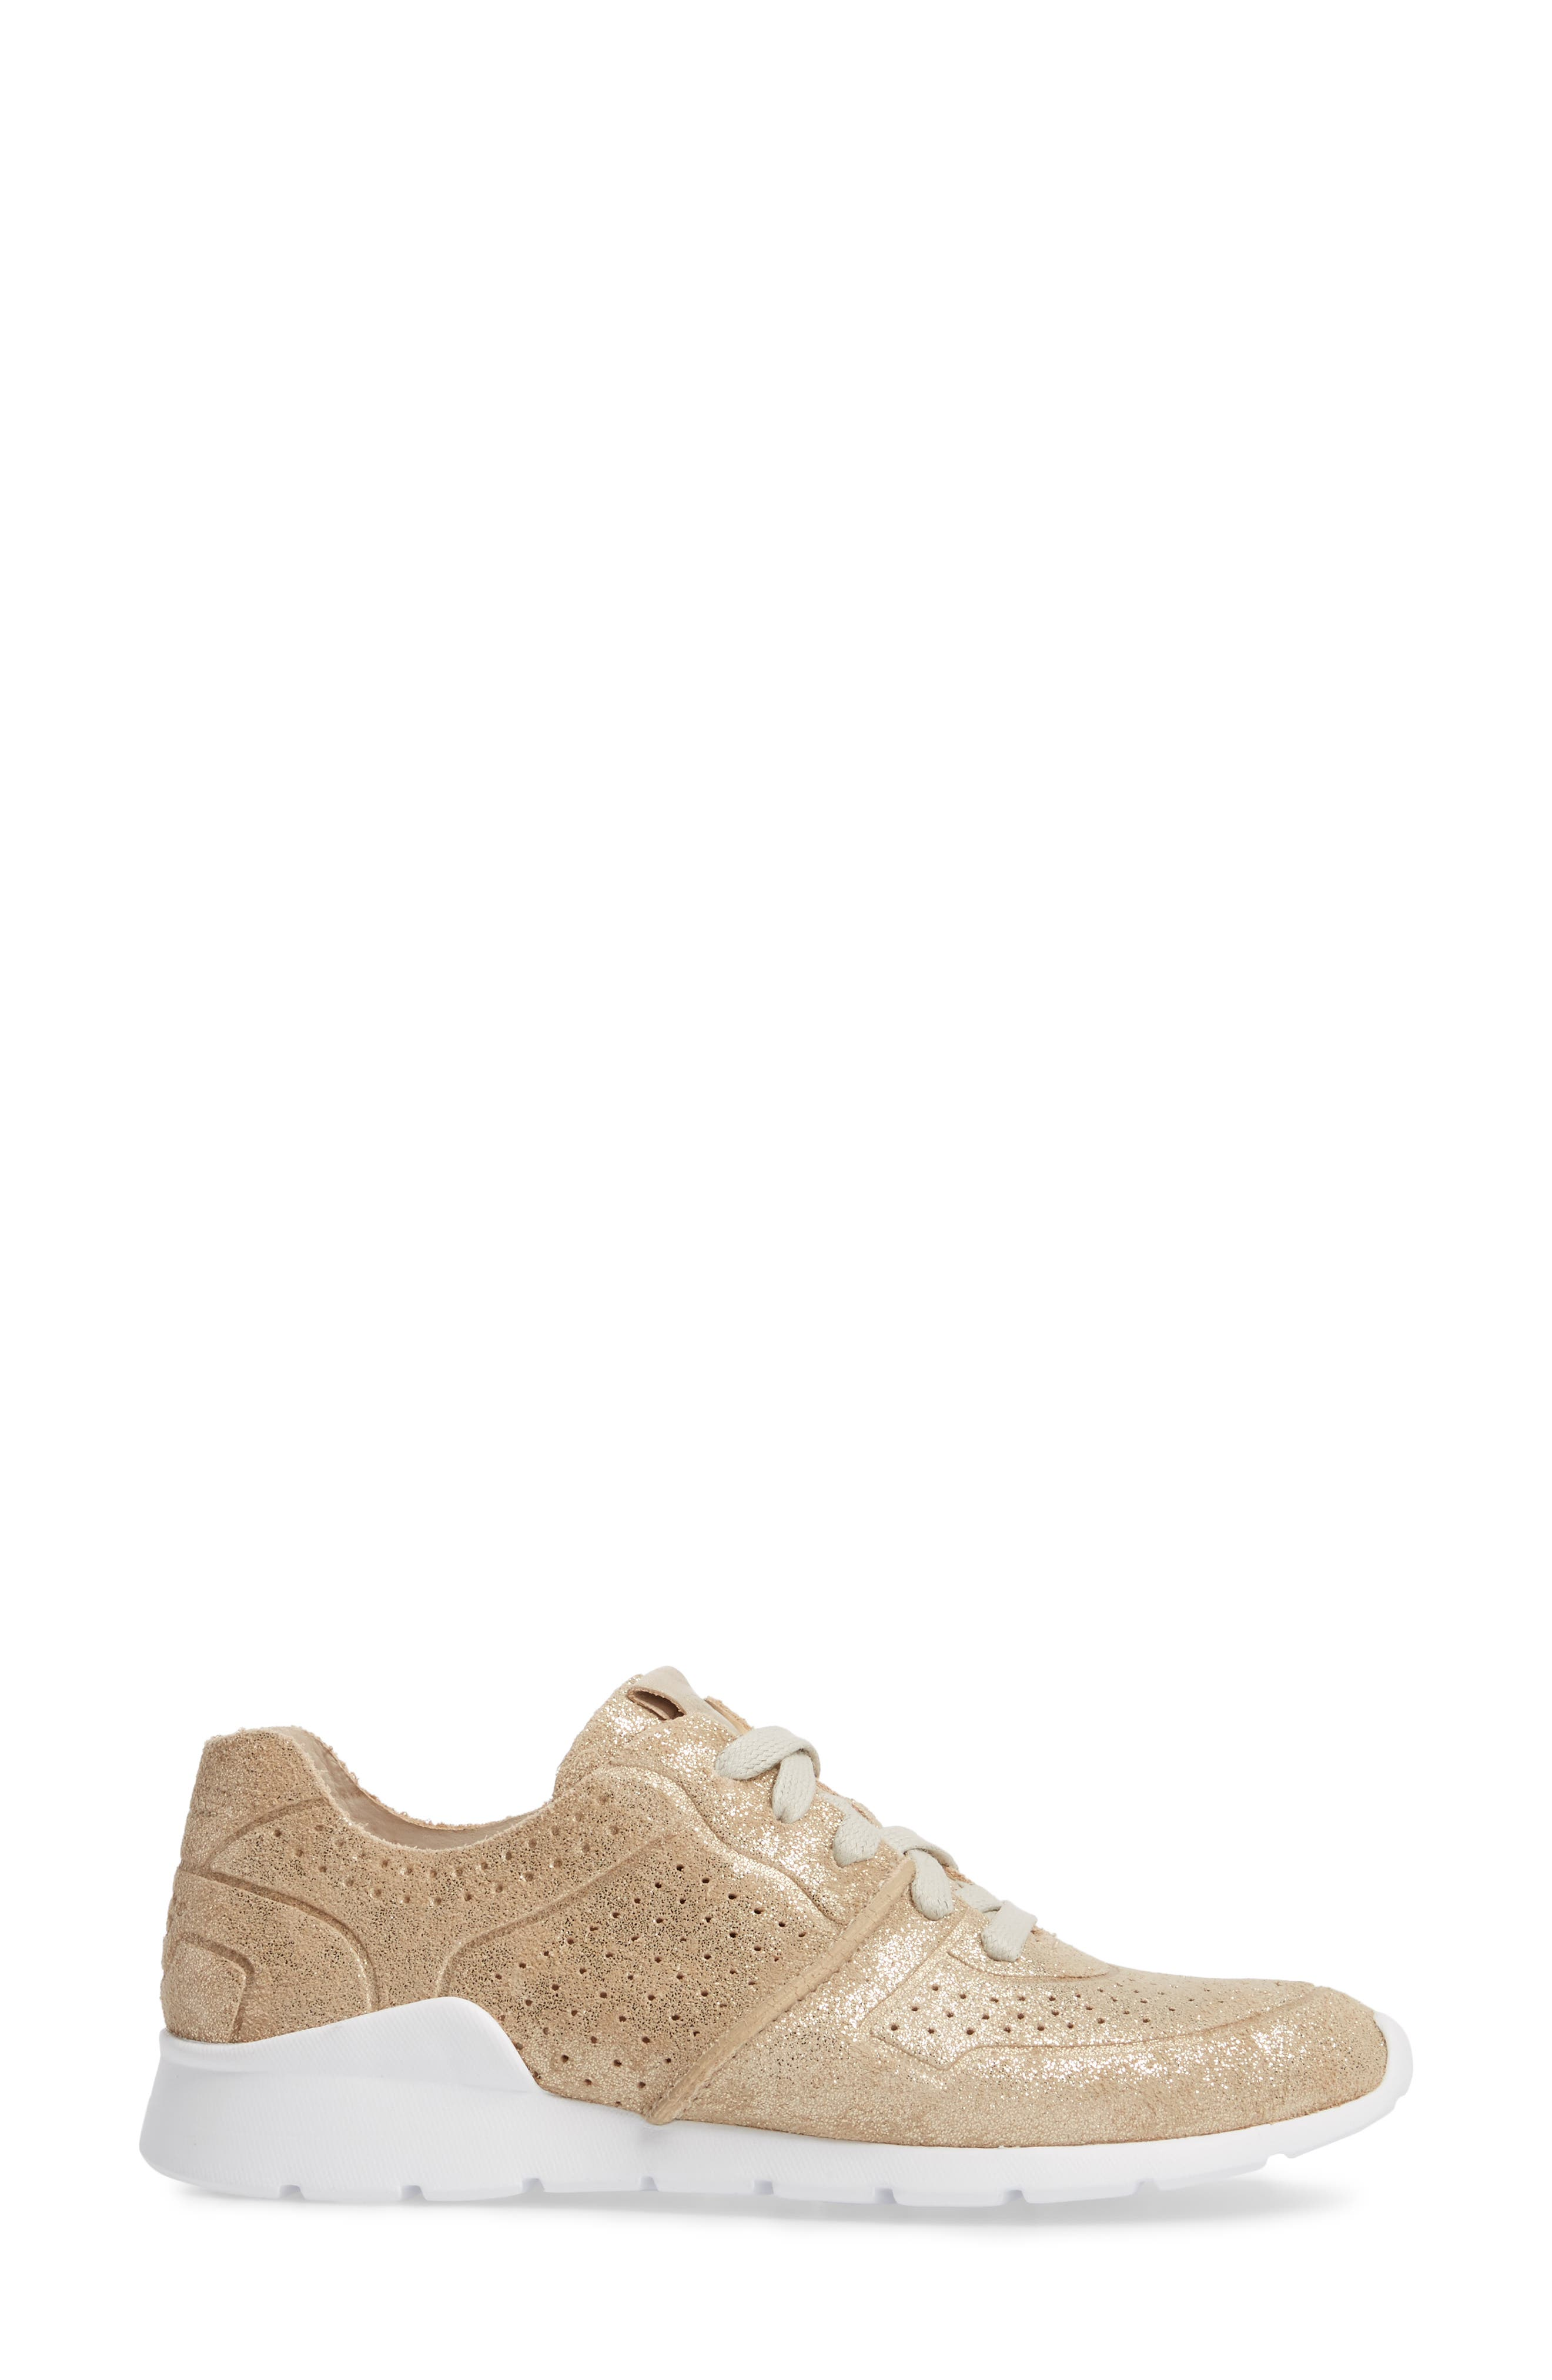 Tye Stardust Sneaker,                             Alternate thumbnail 3, color,                             GOLD LEATHER